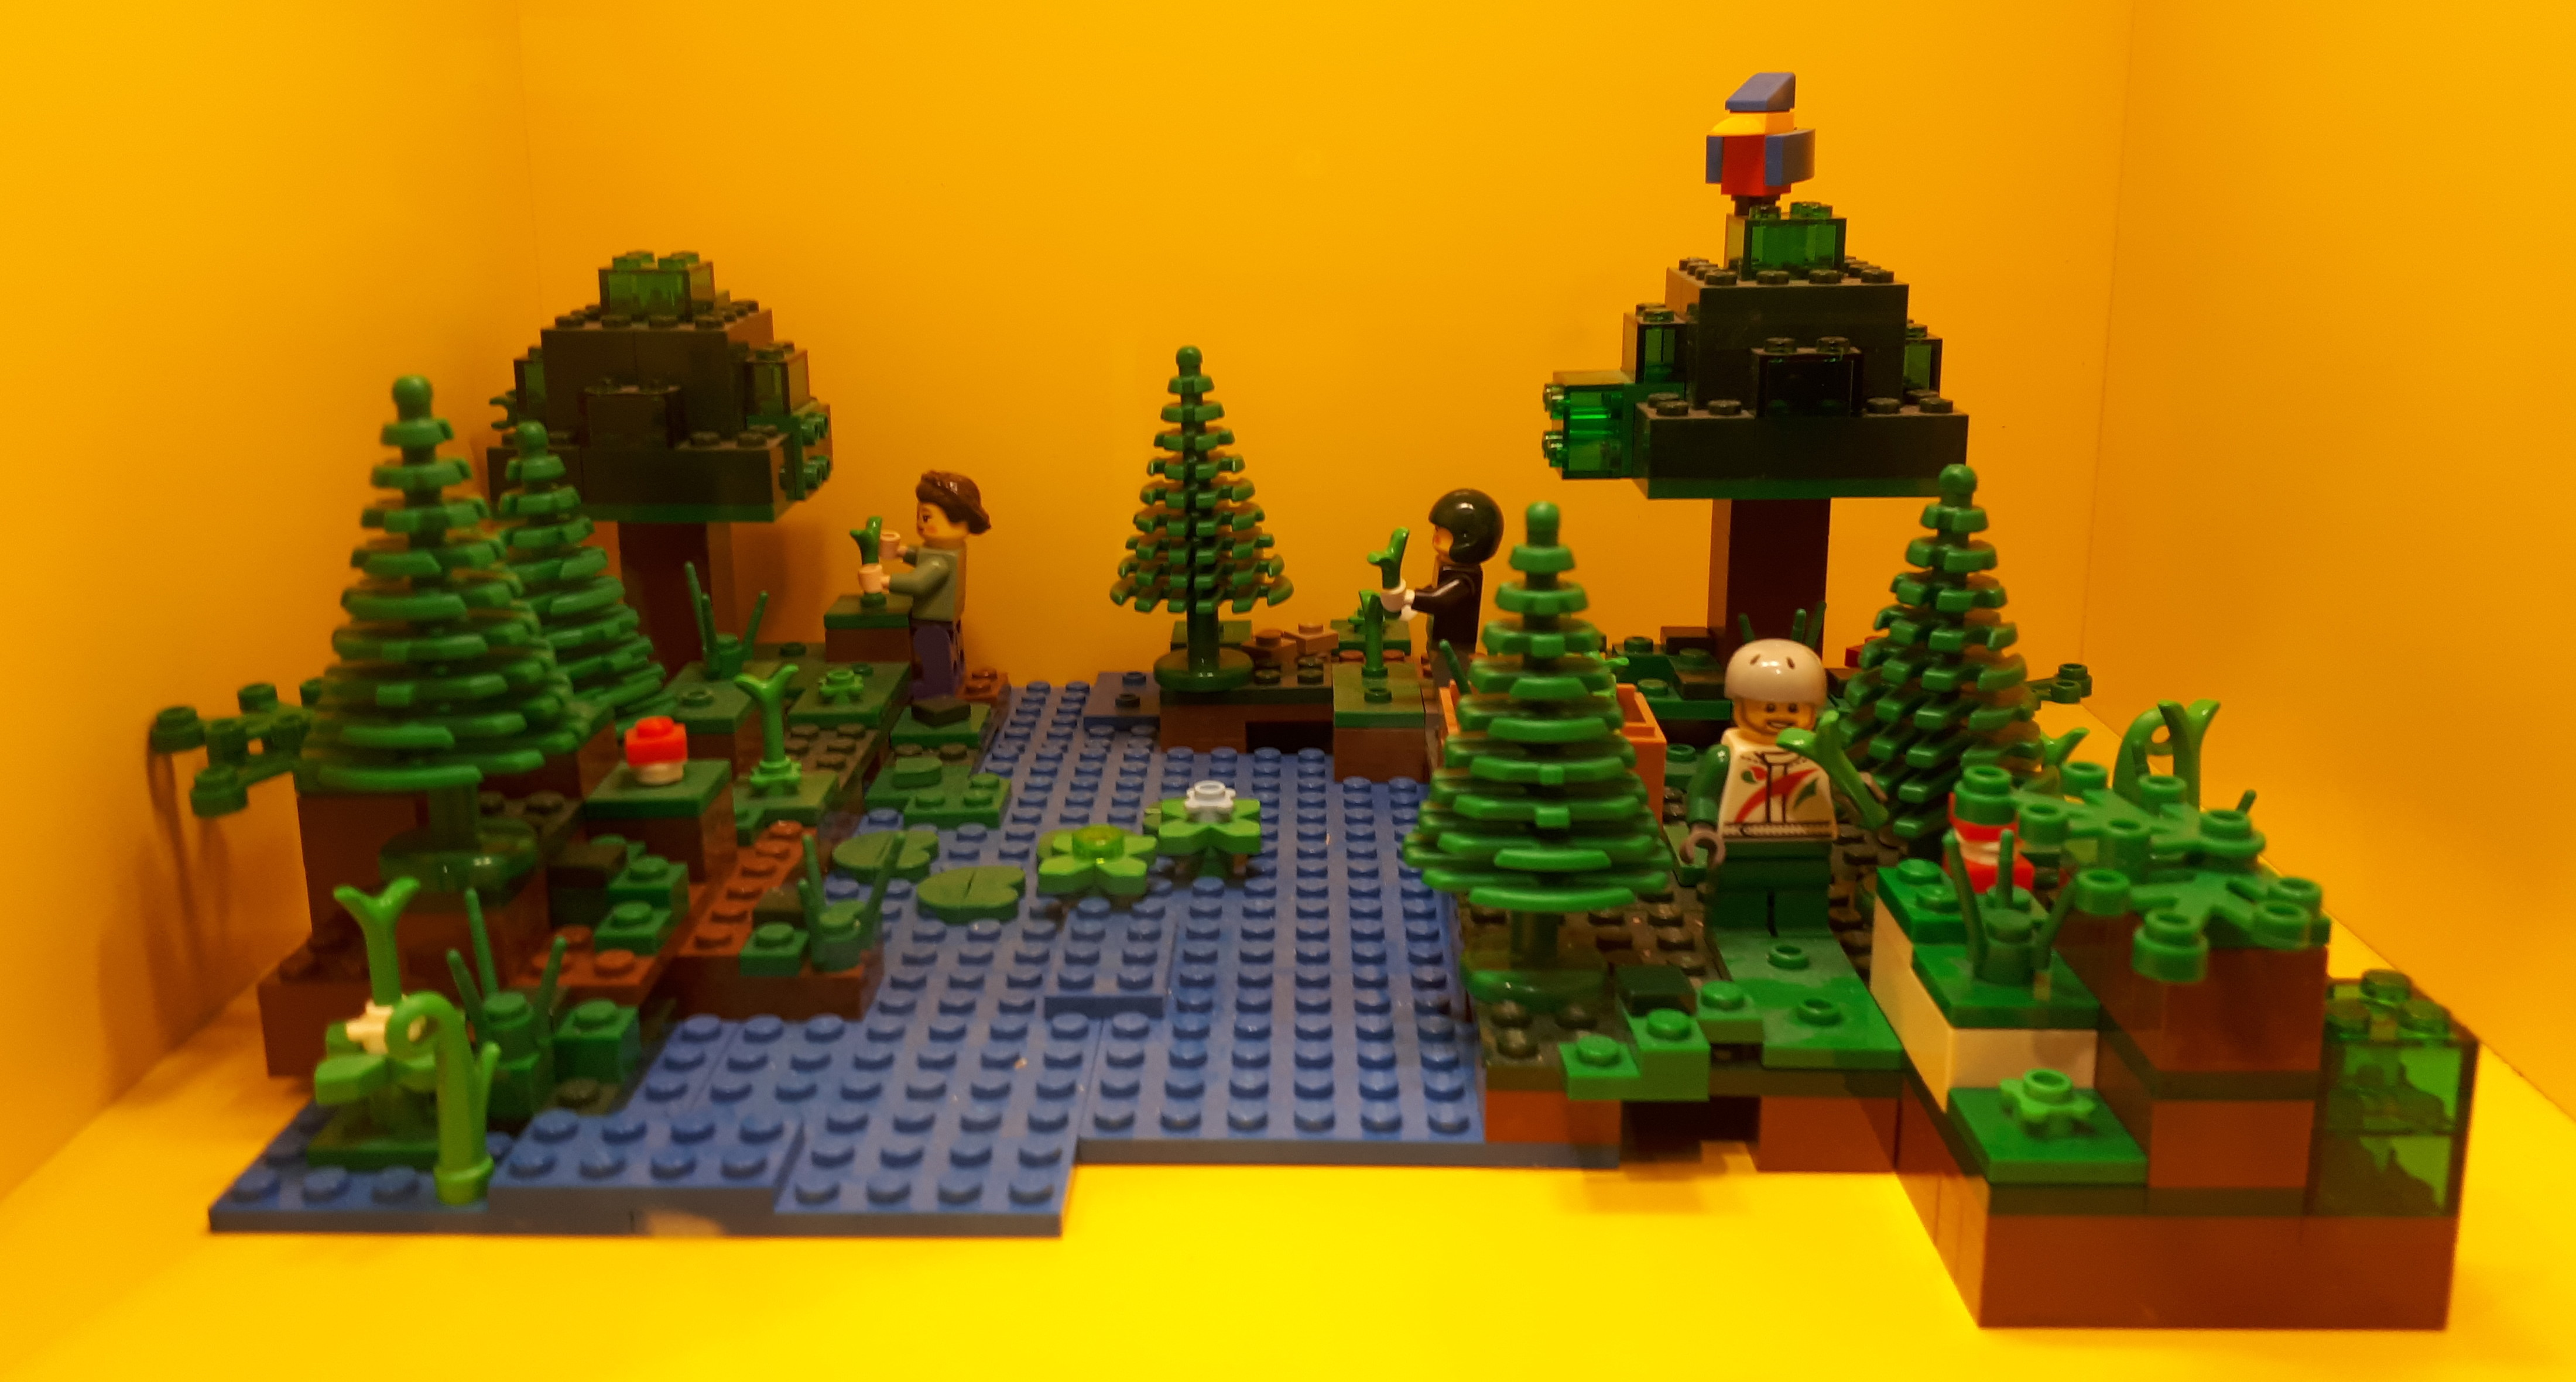 The wonderful irony of using hard, pointy Lego to illustrate living shorelines as an adaptation strategy.